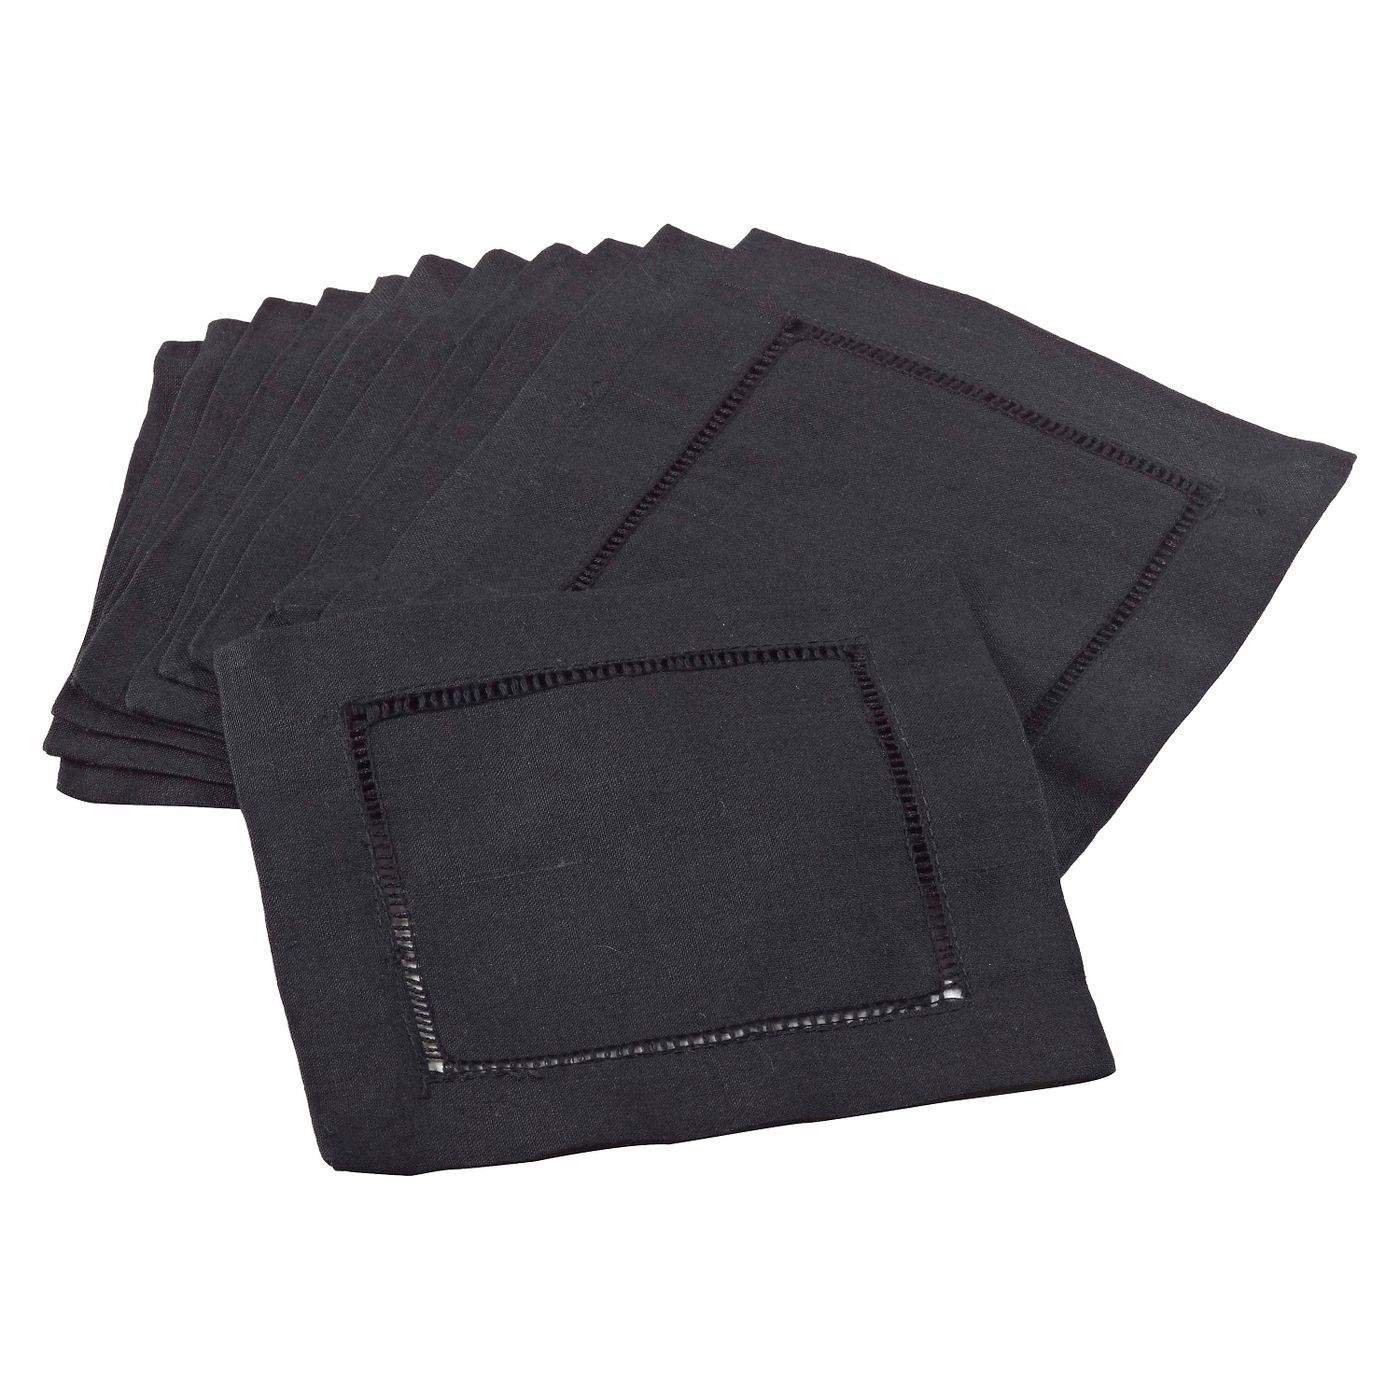 Hemstitched Cocktail Napkin | Noir | Set of 4